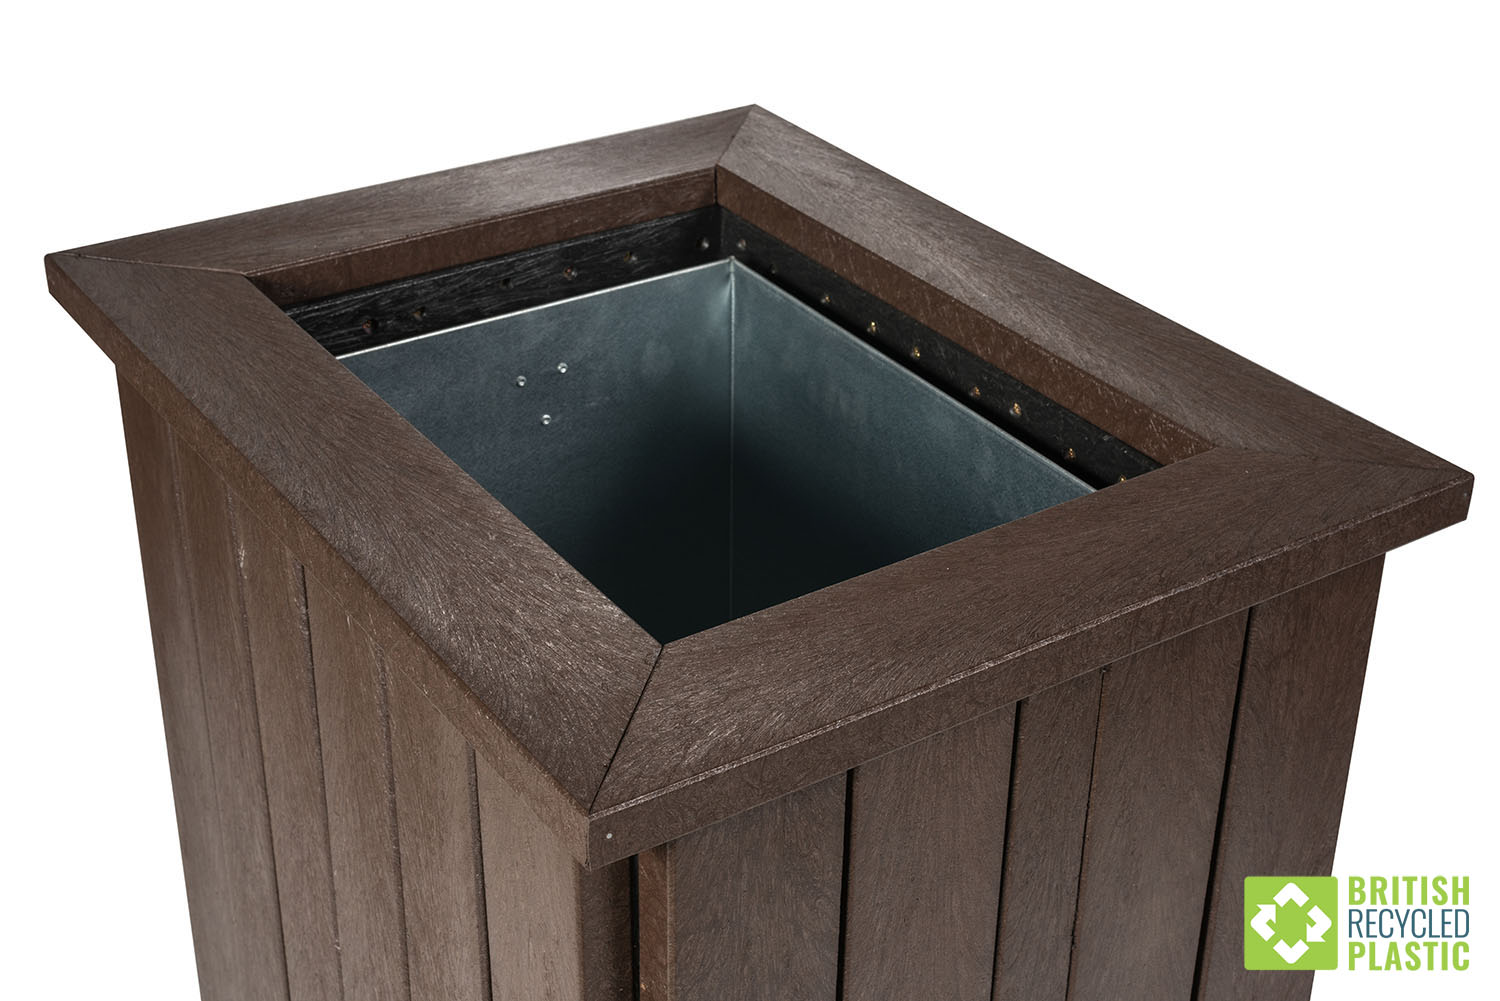 Open topped recycled plastic litter bin with steel insert